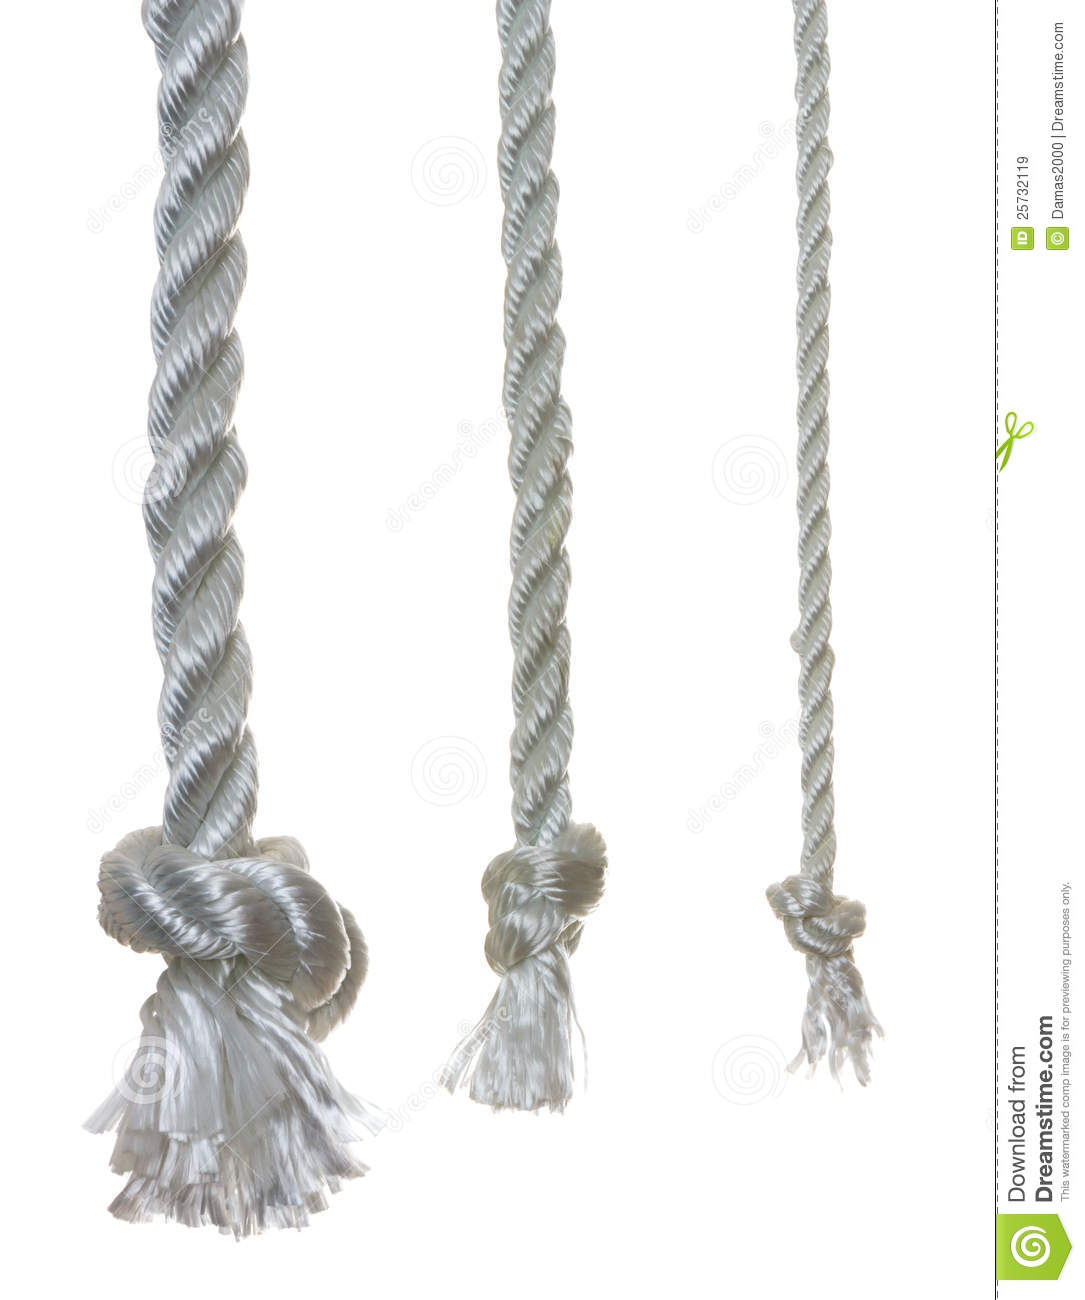 3 otton ropes with knots